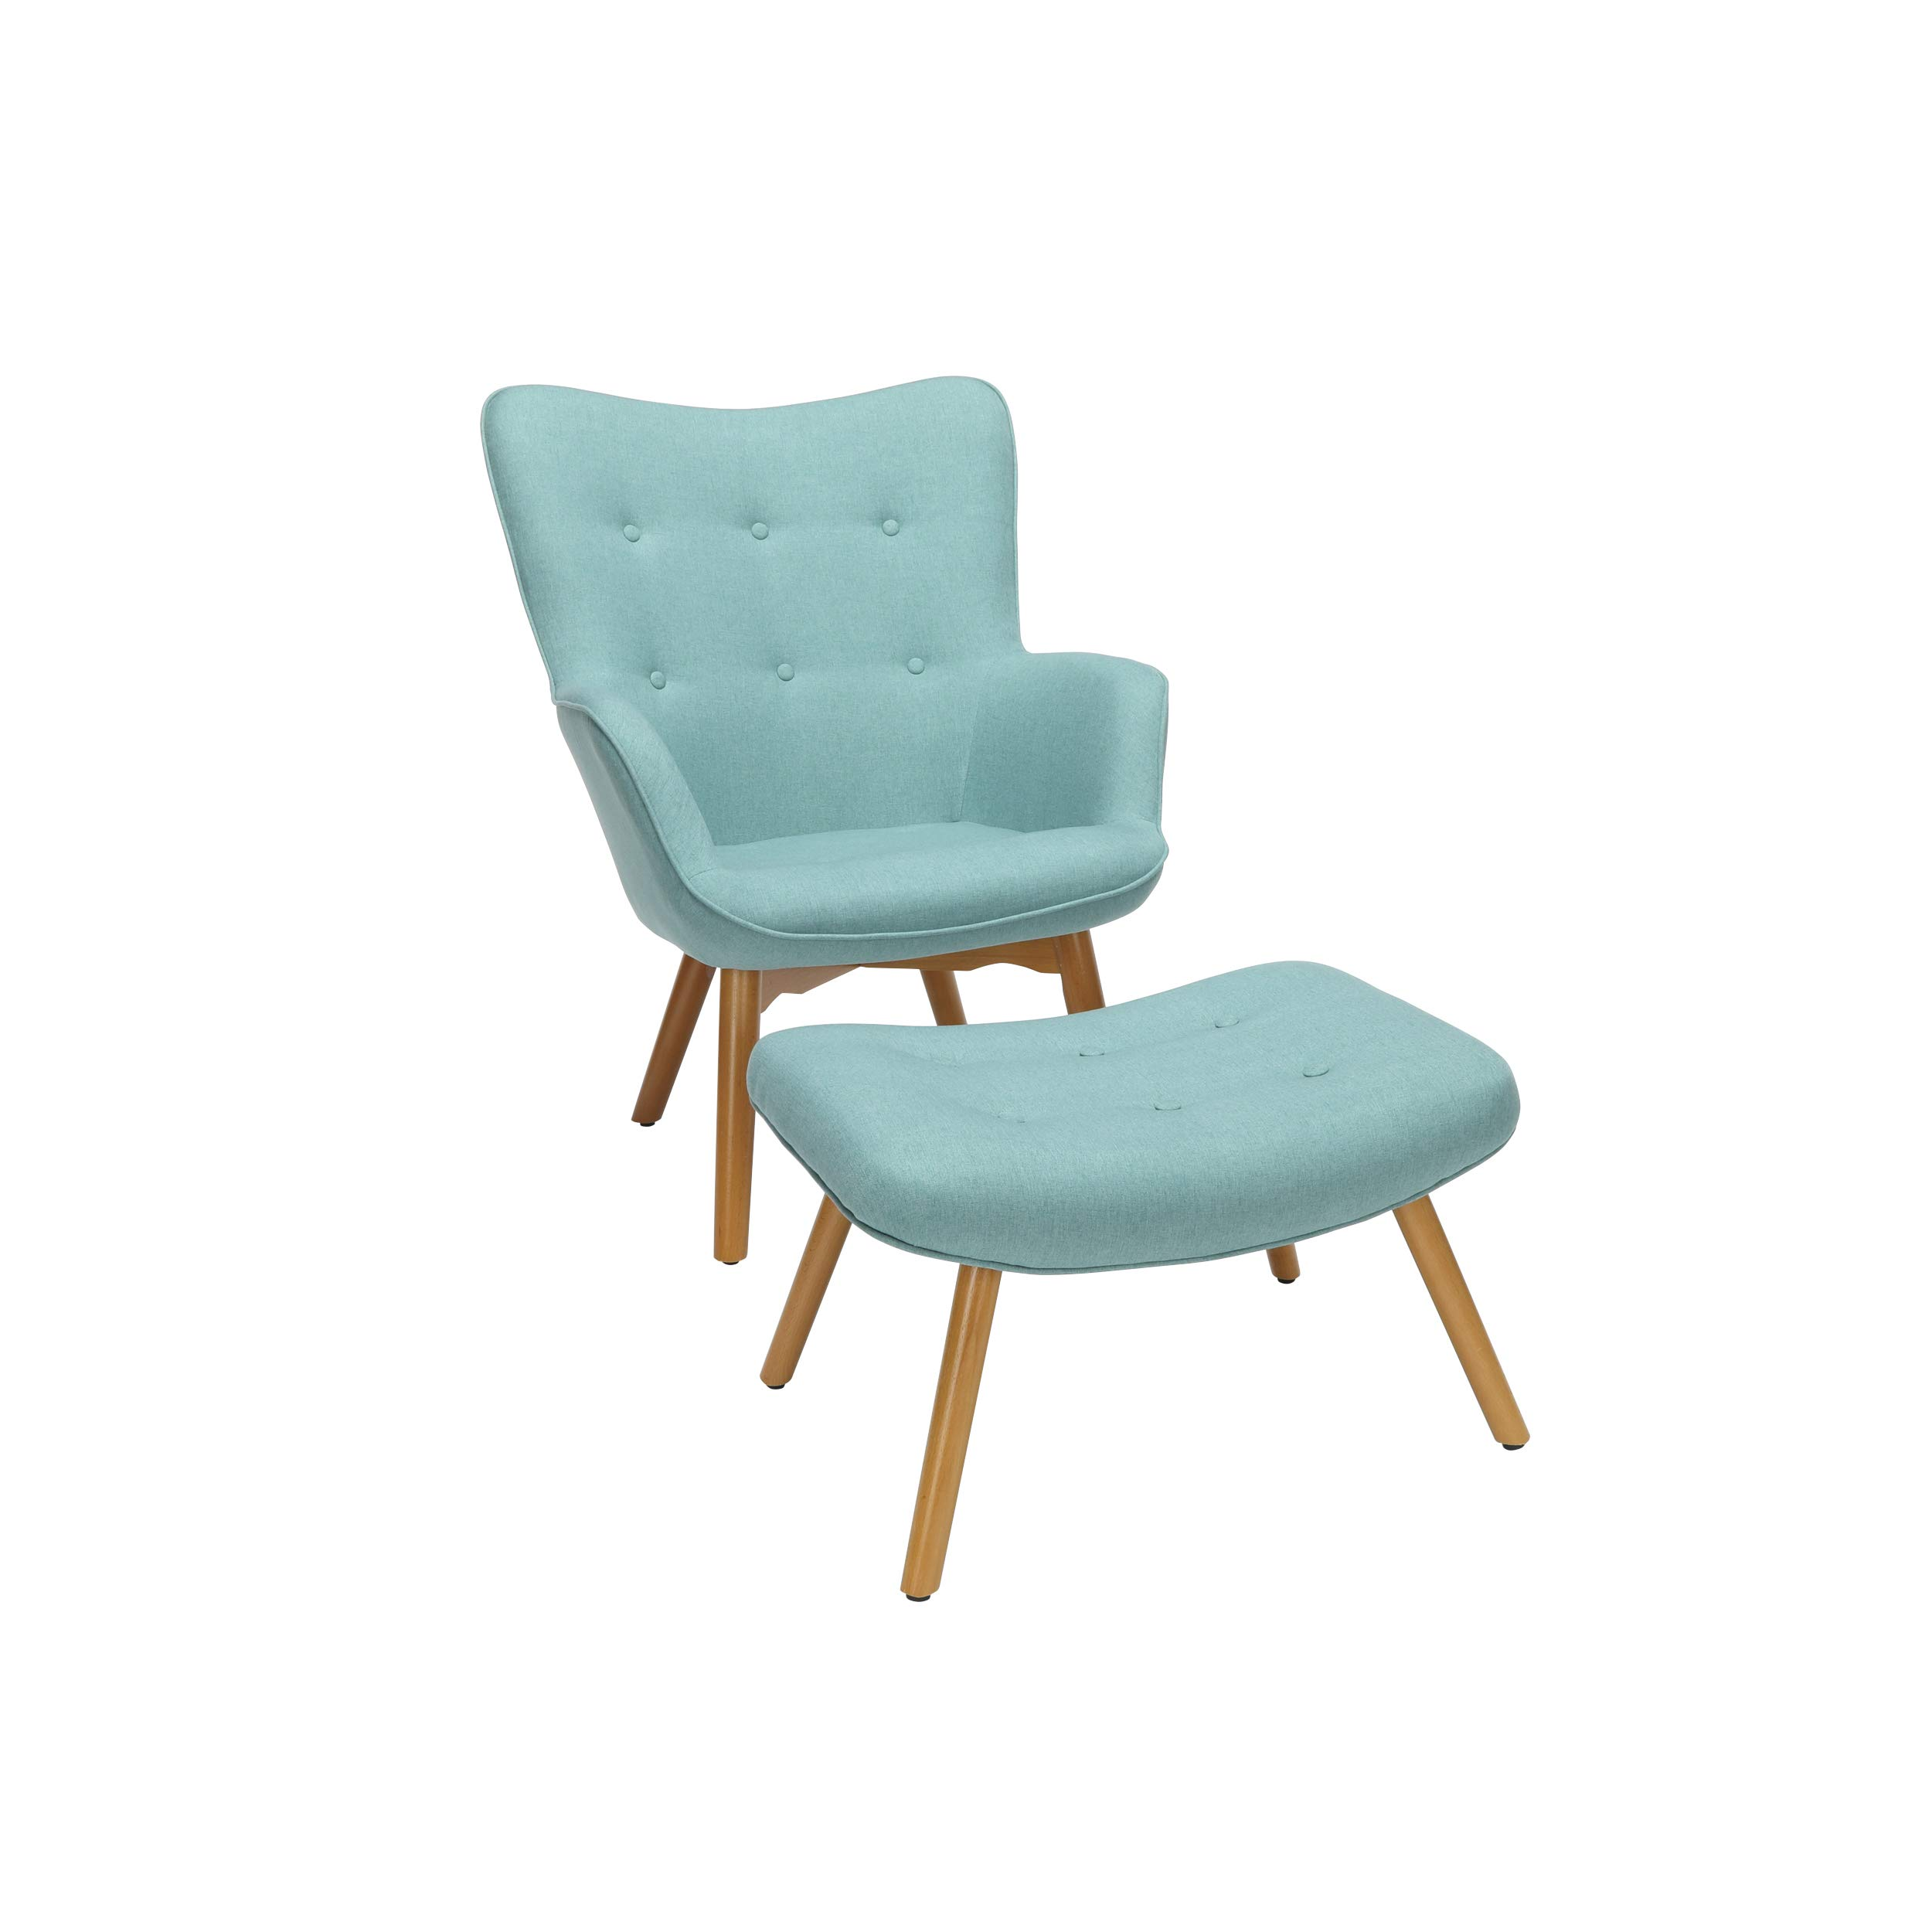 OFM 161 Collection Mid Century Modern Tufted Fabric Lounge Chair with Ottoman, Solid Honey Beechwood Legs, in Teal by OFM